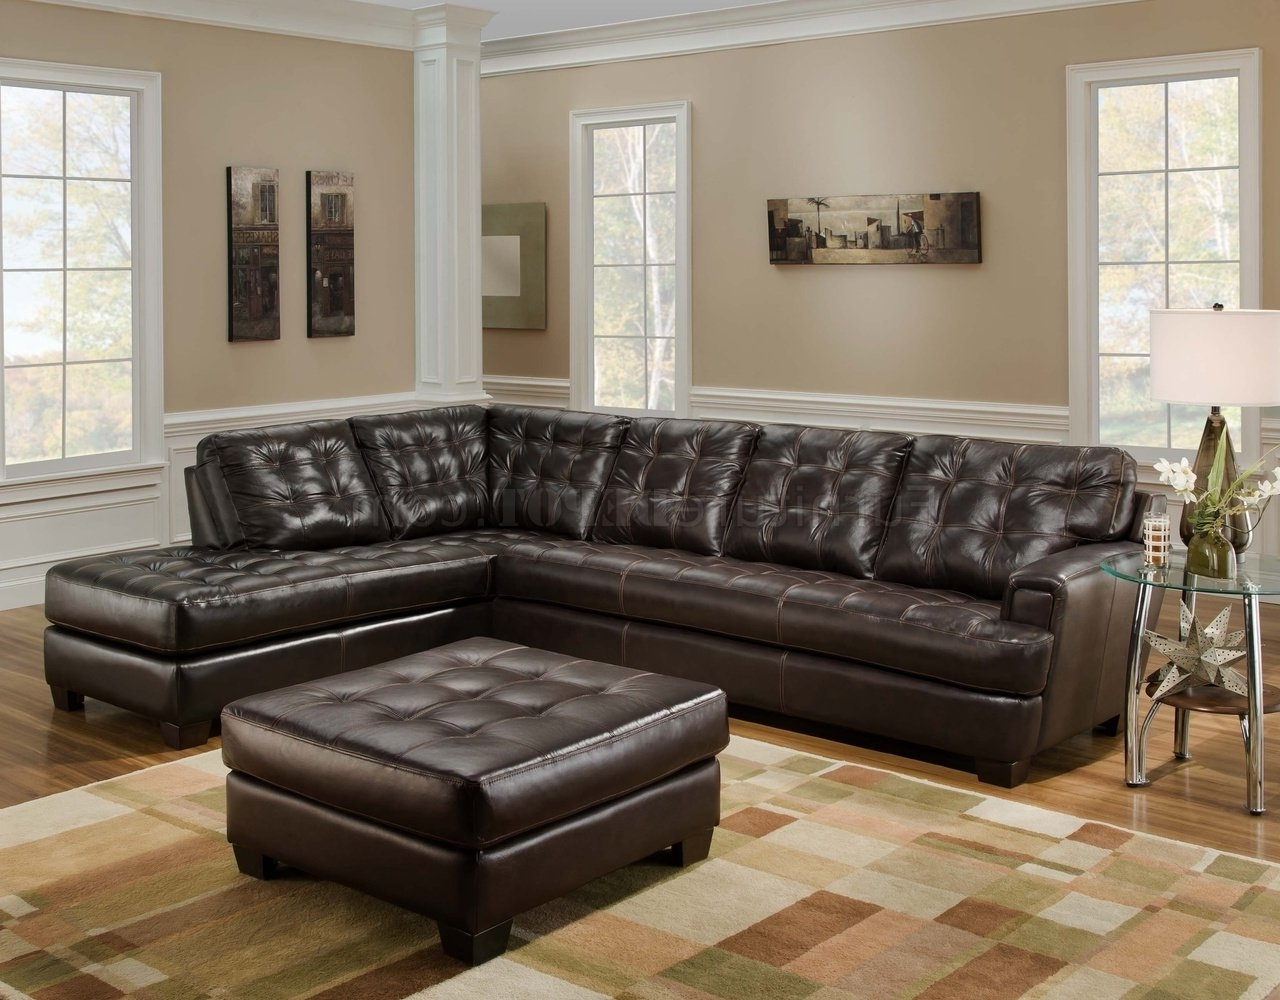 Leather Sectionals With Ottoman Throughout Most Recent Chicory Brown Tufted Top Grain Leather Modern Sectional Sofa (View 20 of 20)